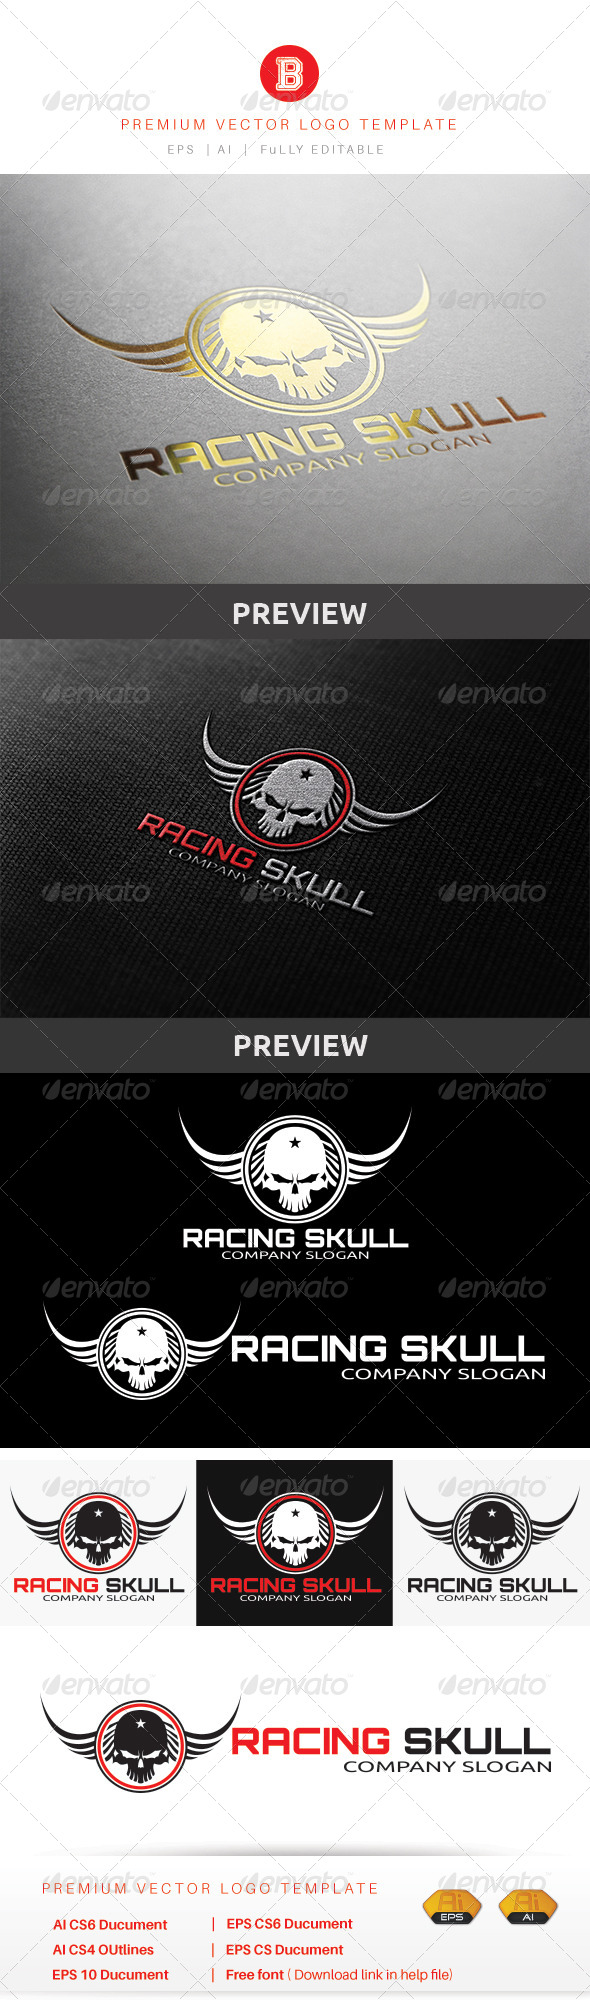 GraphicRiver Racing Skull 8615541